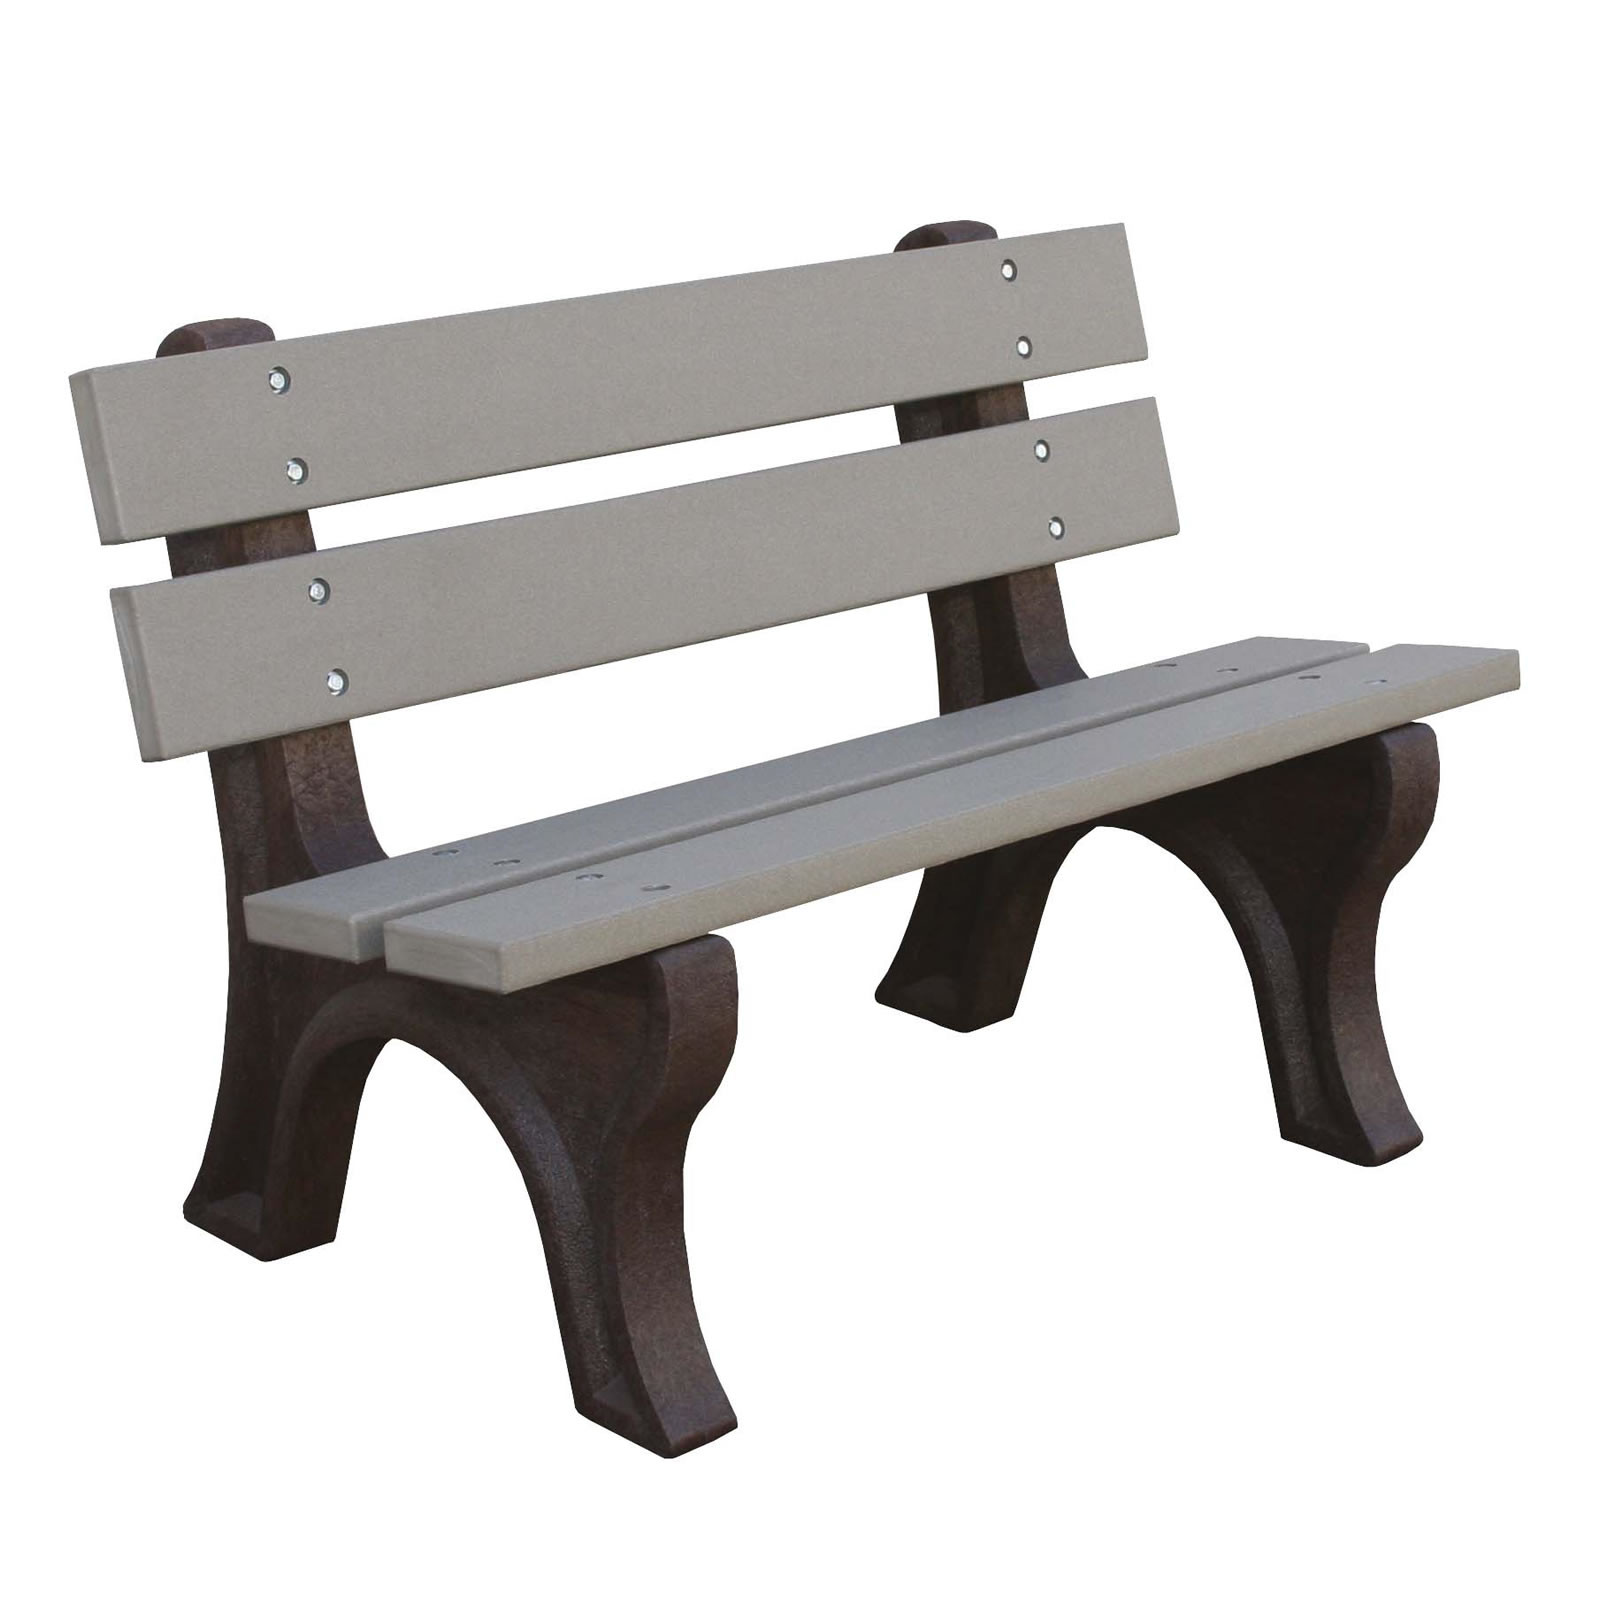 Eagle One - High Back Bench 2x6 Slats